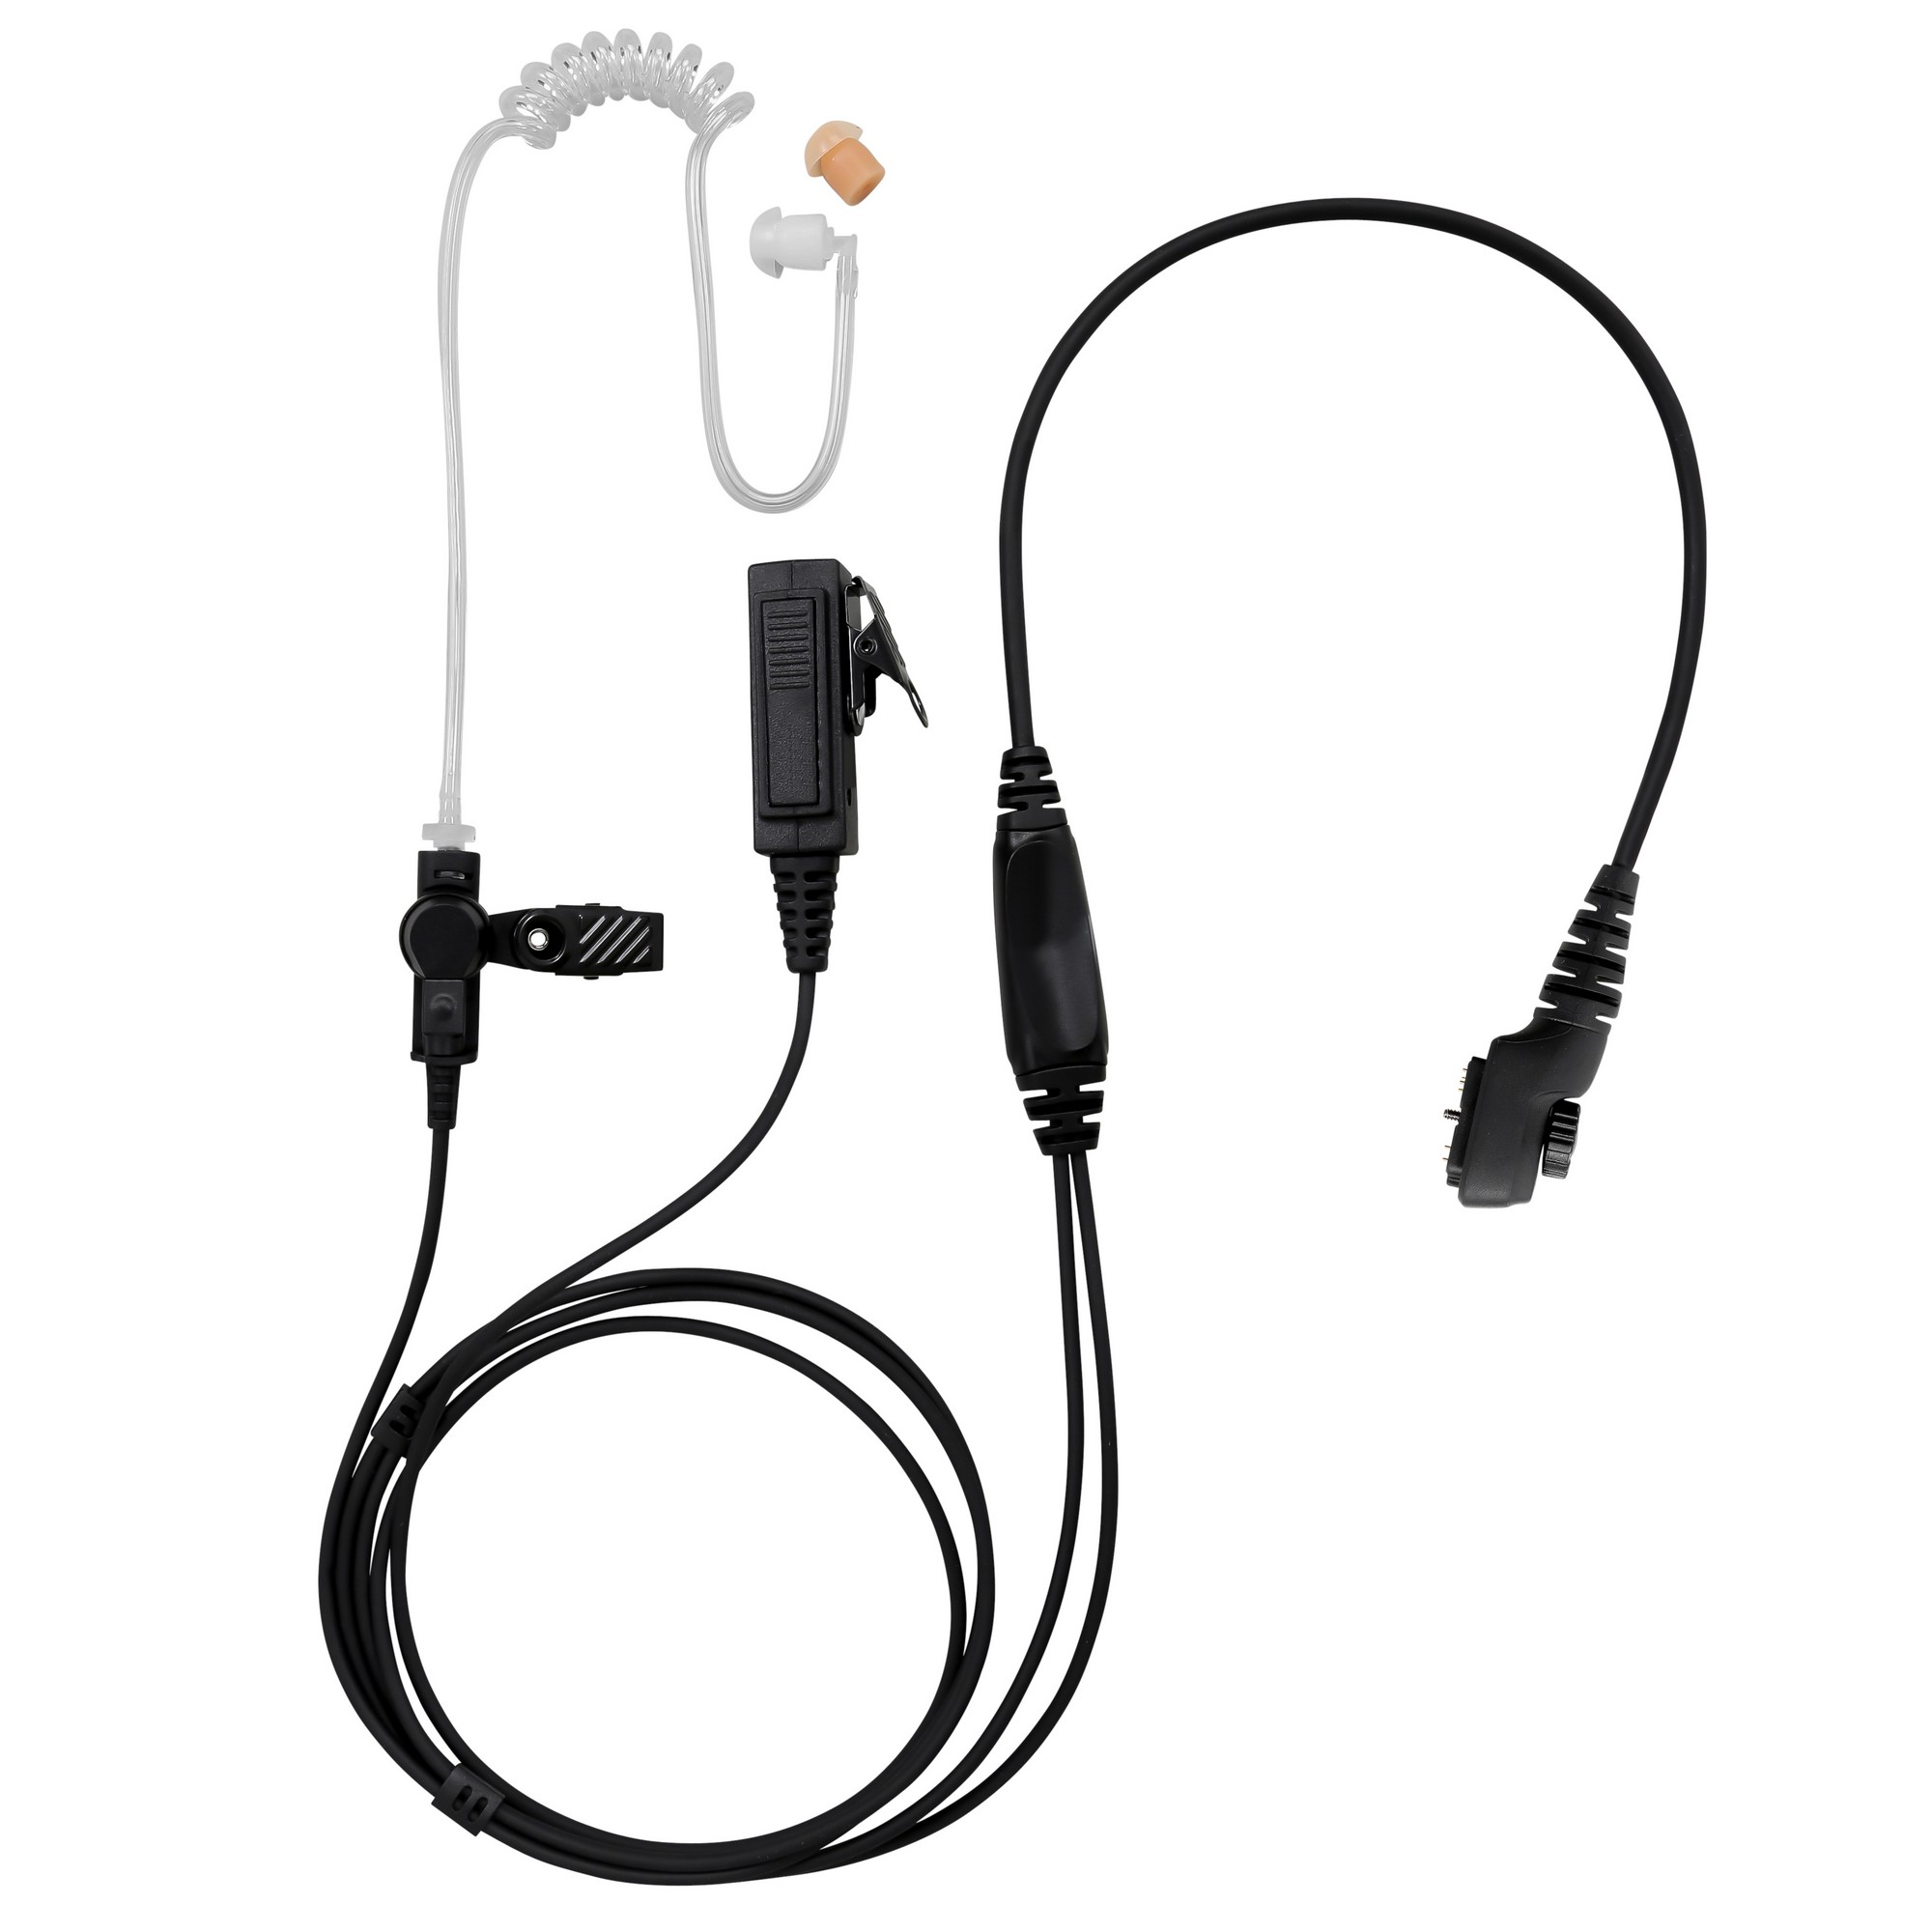 Maxtop BCT22-H5 2-Wire Clear Coil Surveillance Kit for Hytera HYT PD700 PD790Ex PT580 PT580H